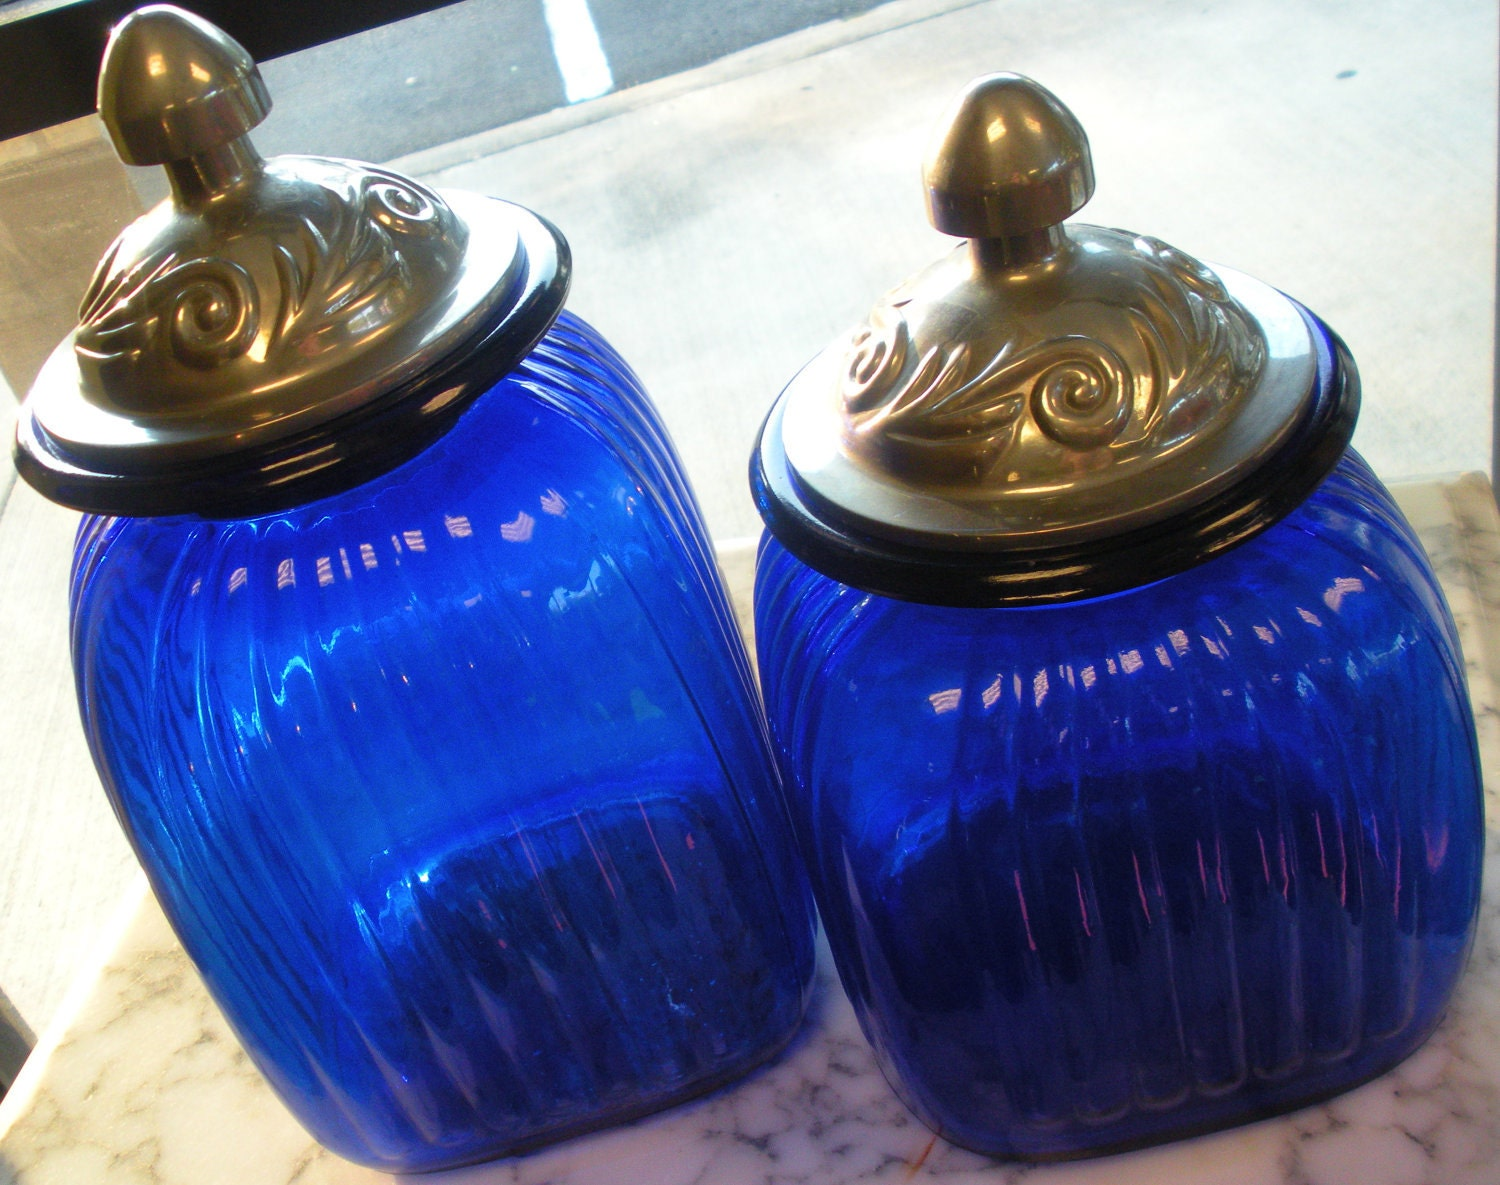 Cobalt blue canisters artland by vintagevaultaustin on etsy - Blue glass kitchen canisters ...